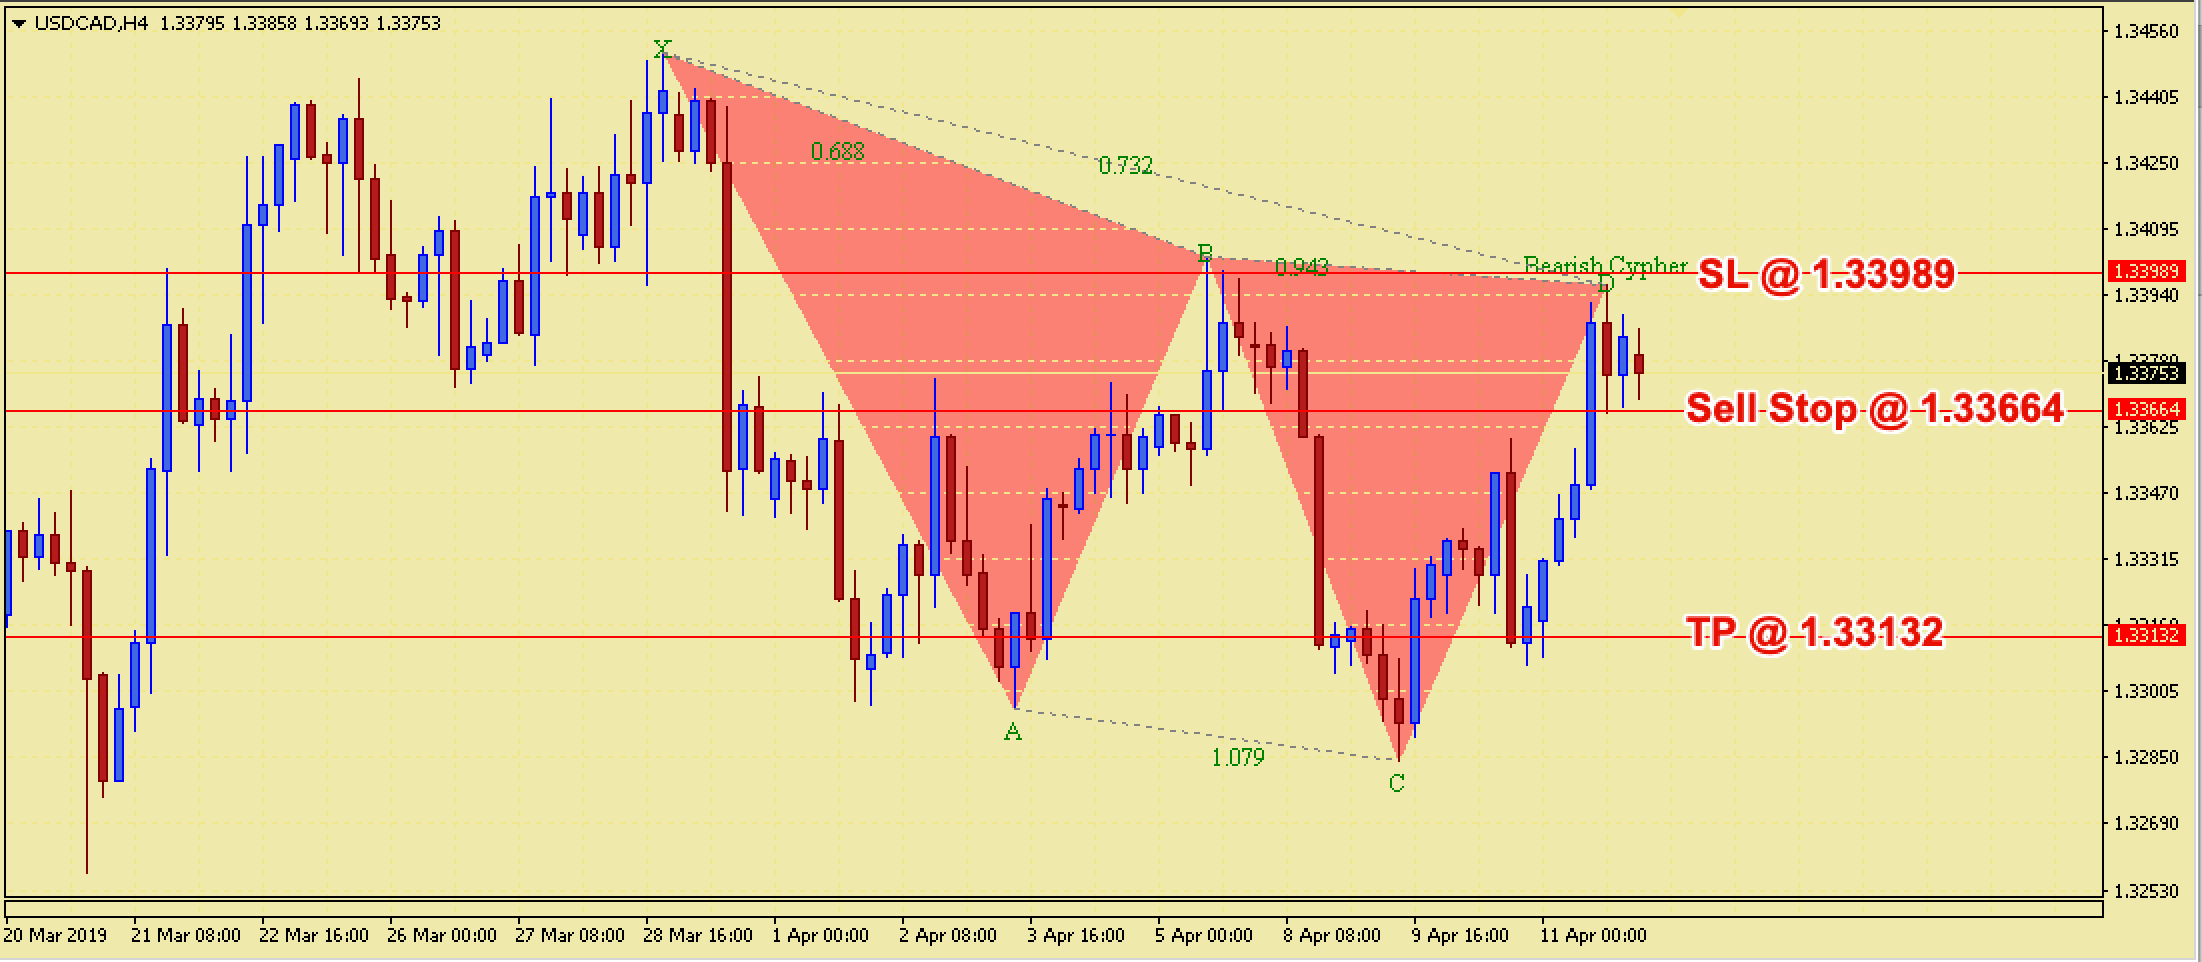 USDCAD Bearish Cypher Harmonic Pattern - 12th April 2019